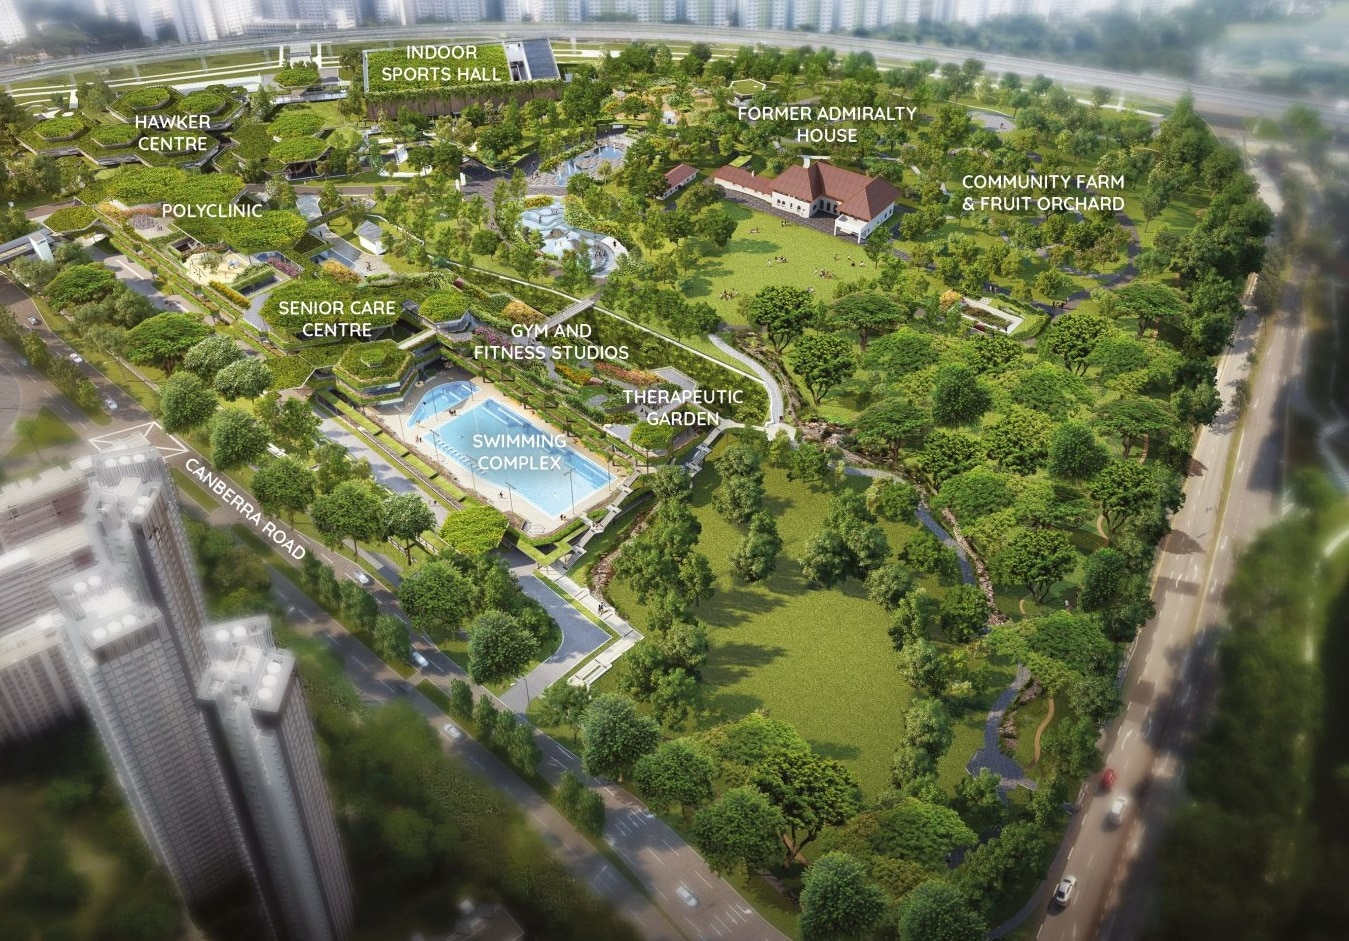 Bukit Canberra and its facilities, seen from the direction of the Nov 2020 Sembawang BTO